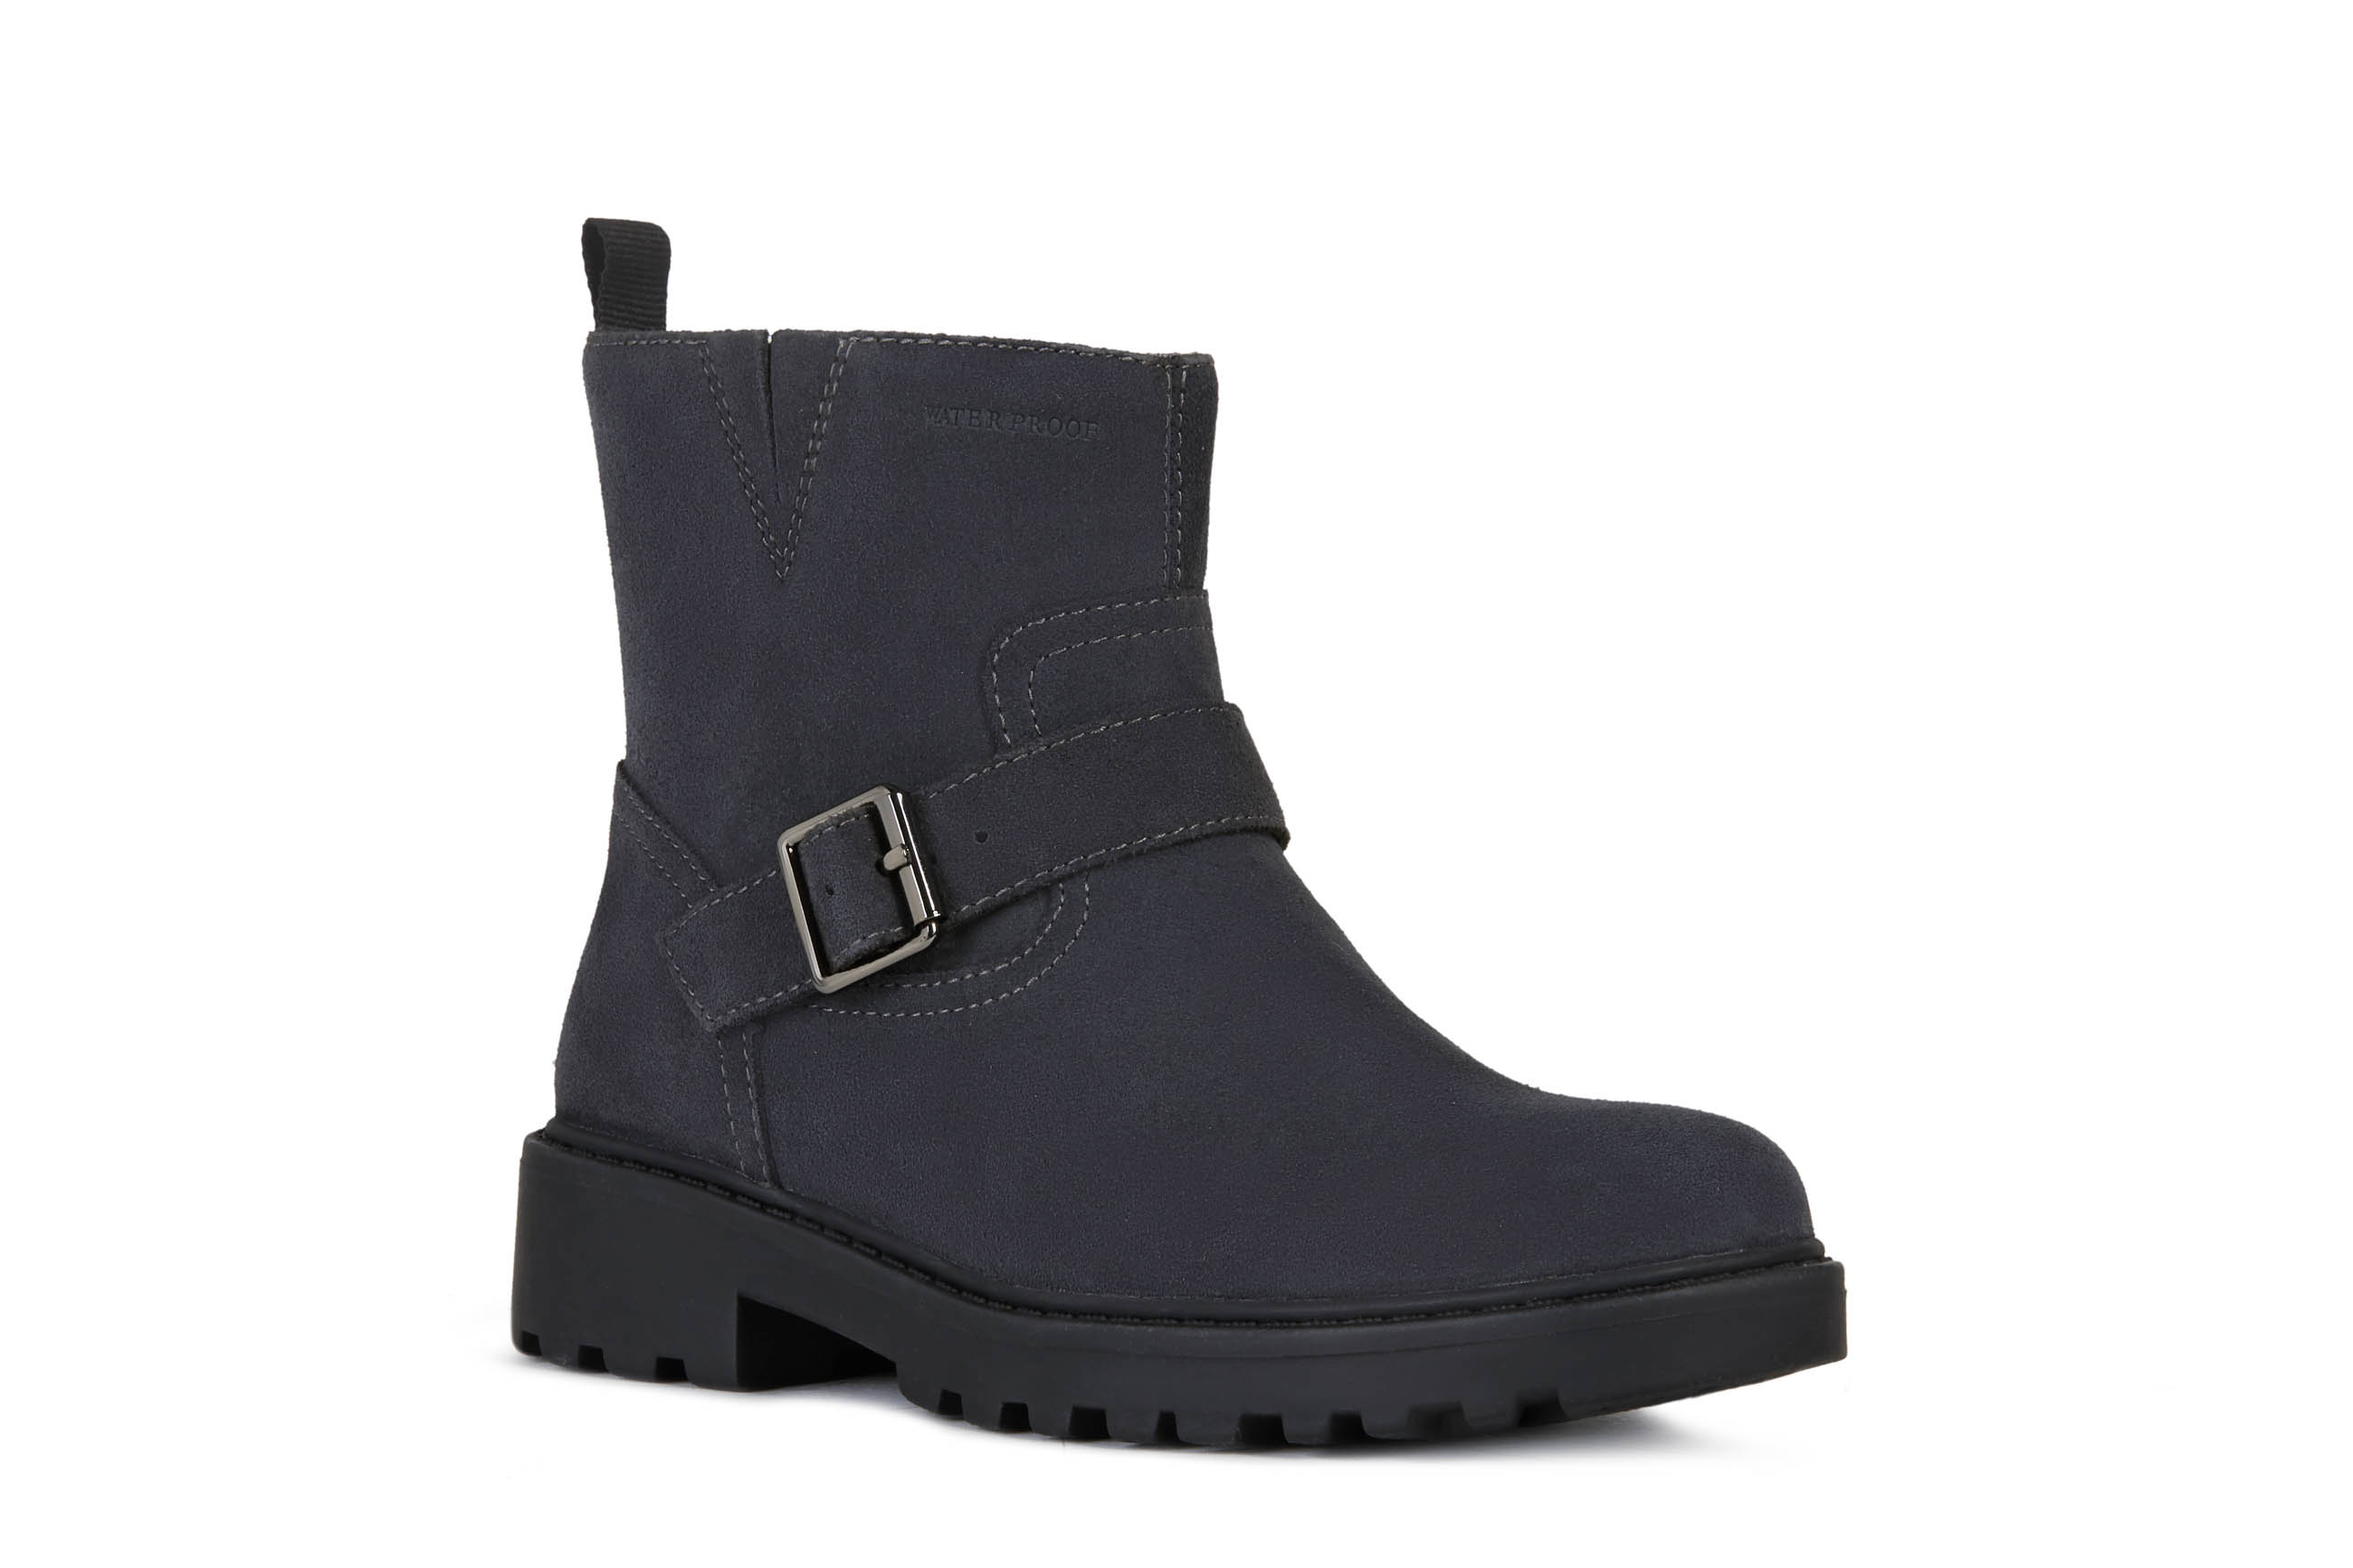 BOTA  WATERPROOF J CASEY GIRL WPF B. PIEL/SINTETICO DARK GREY